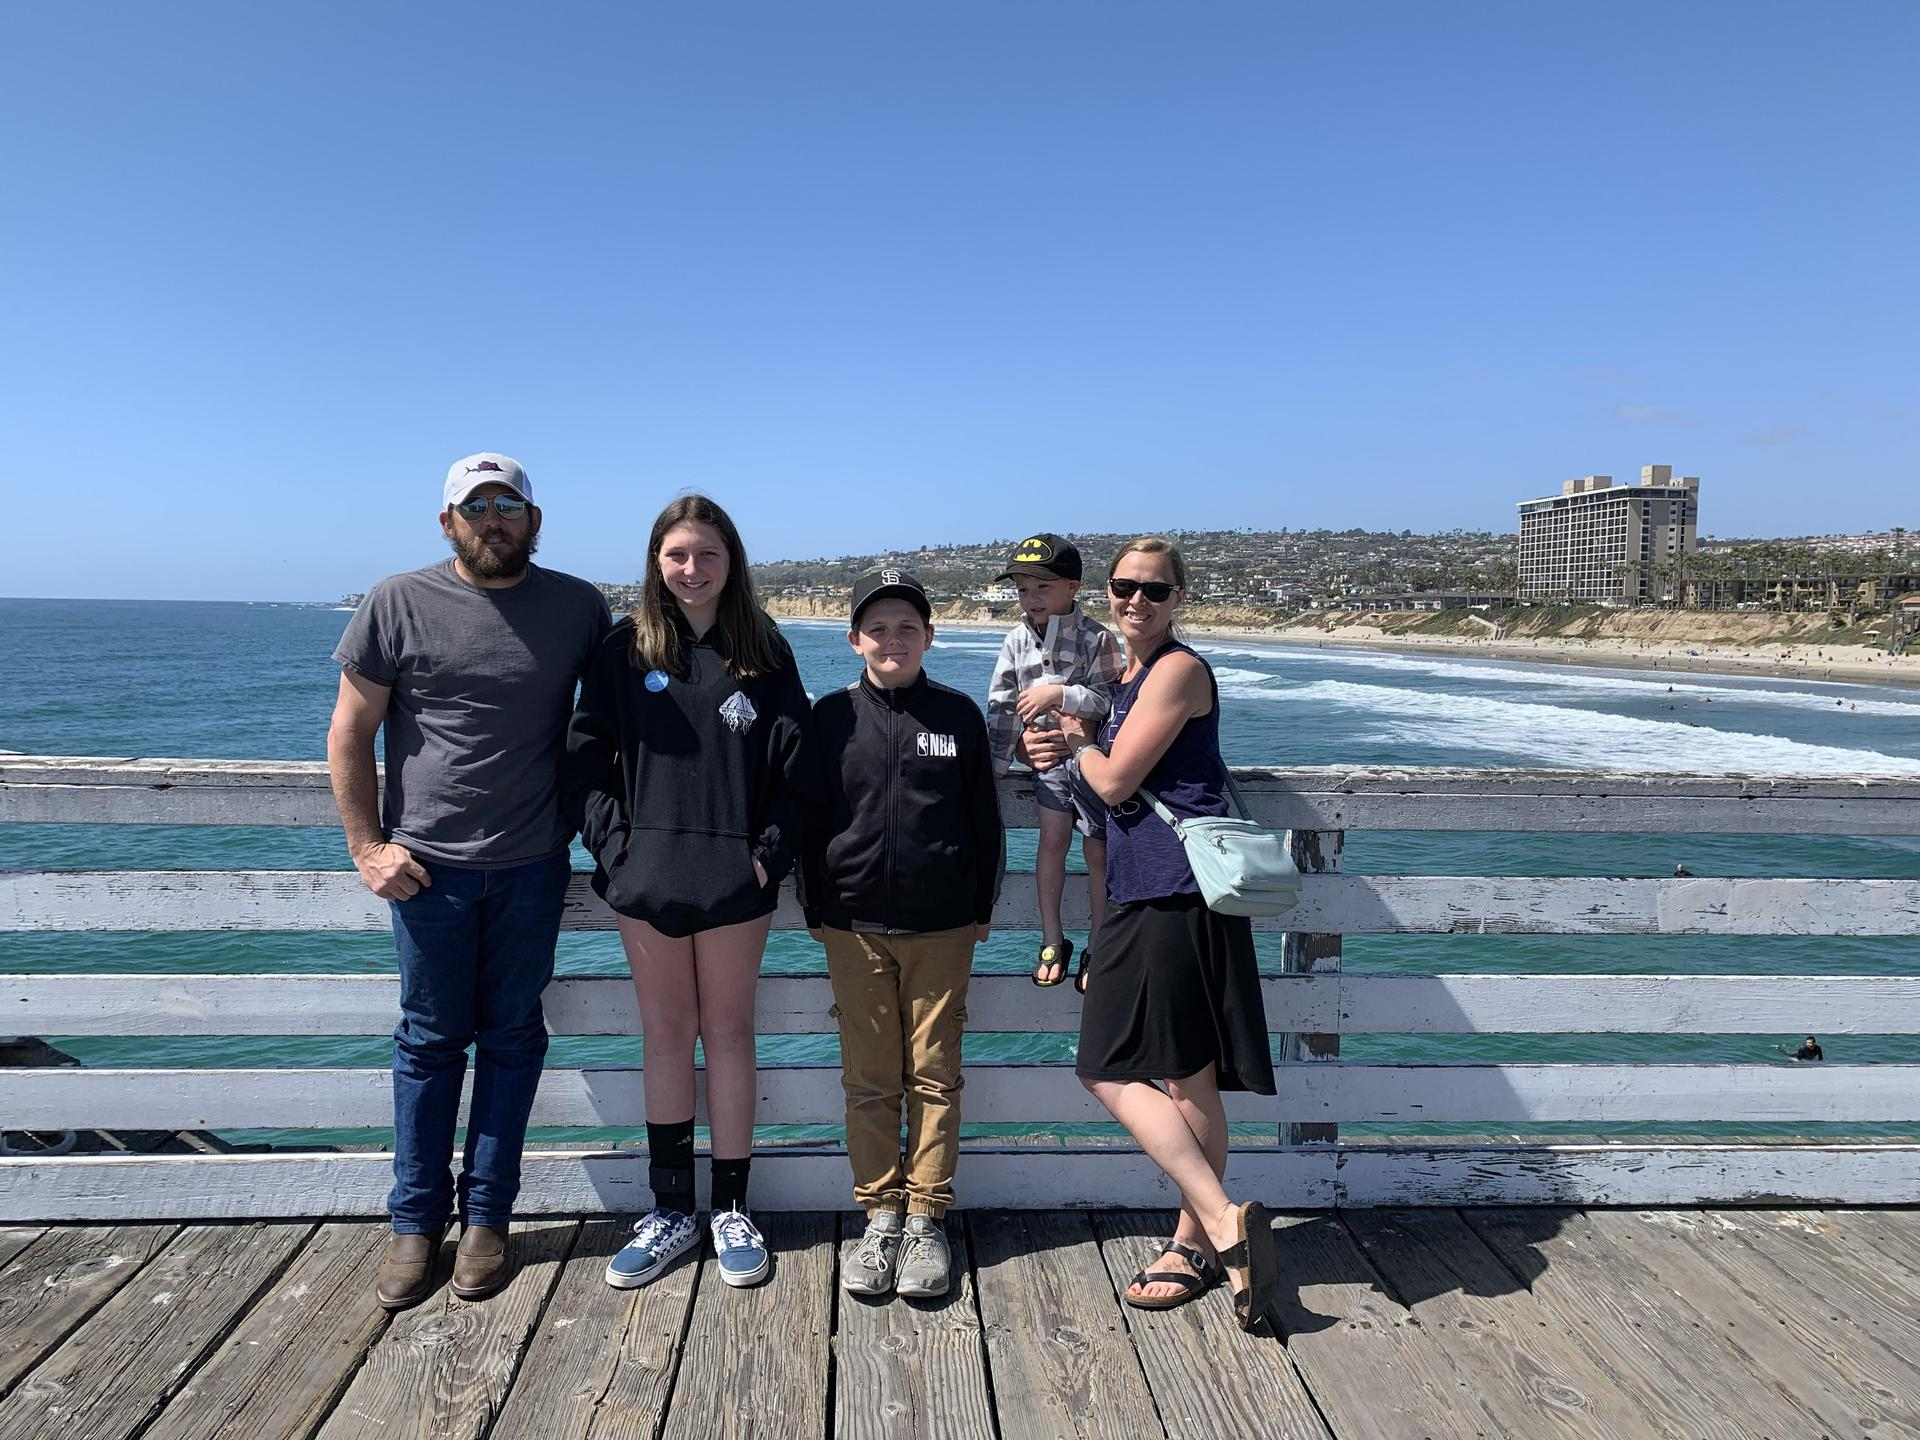 My family and I visiting San Diego in April 2019